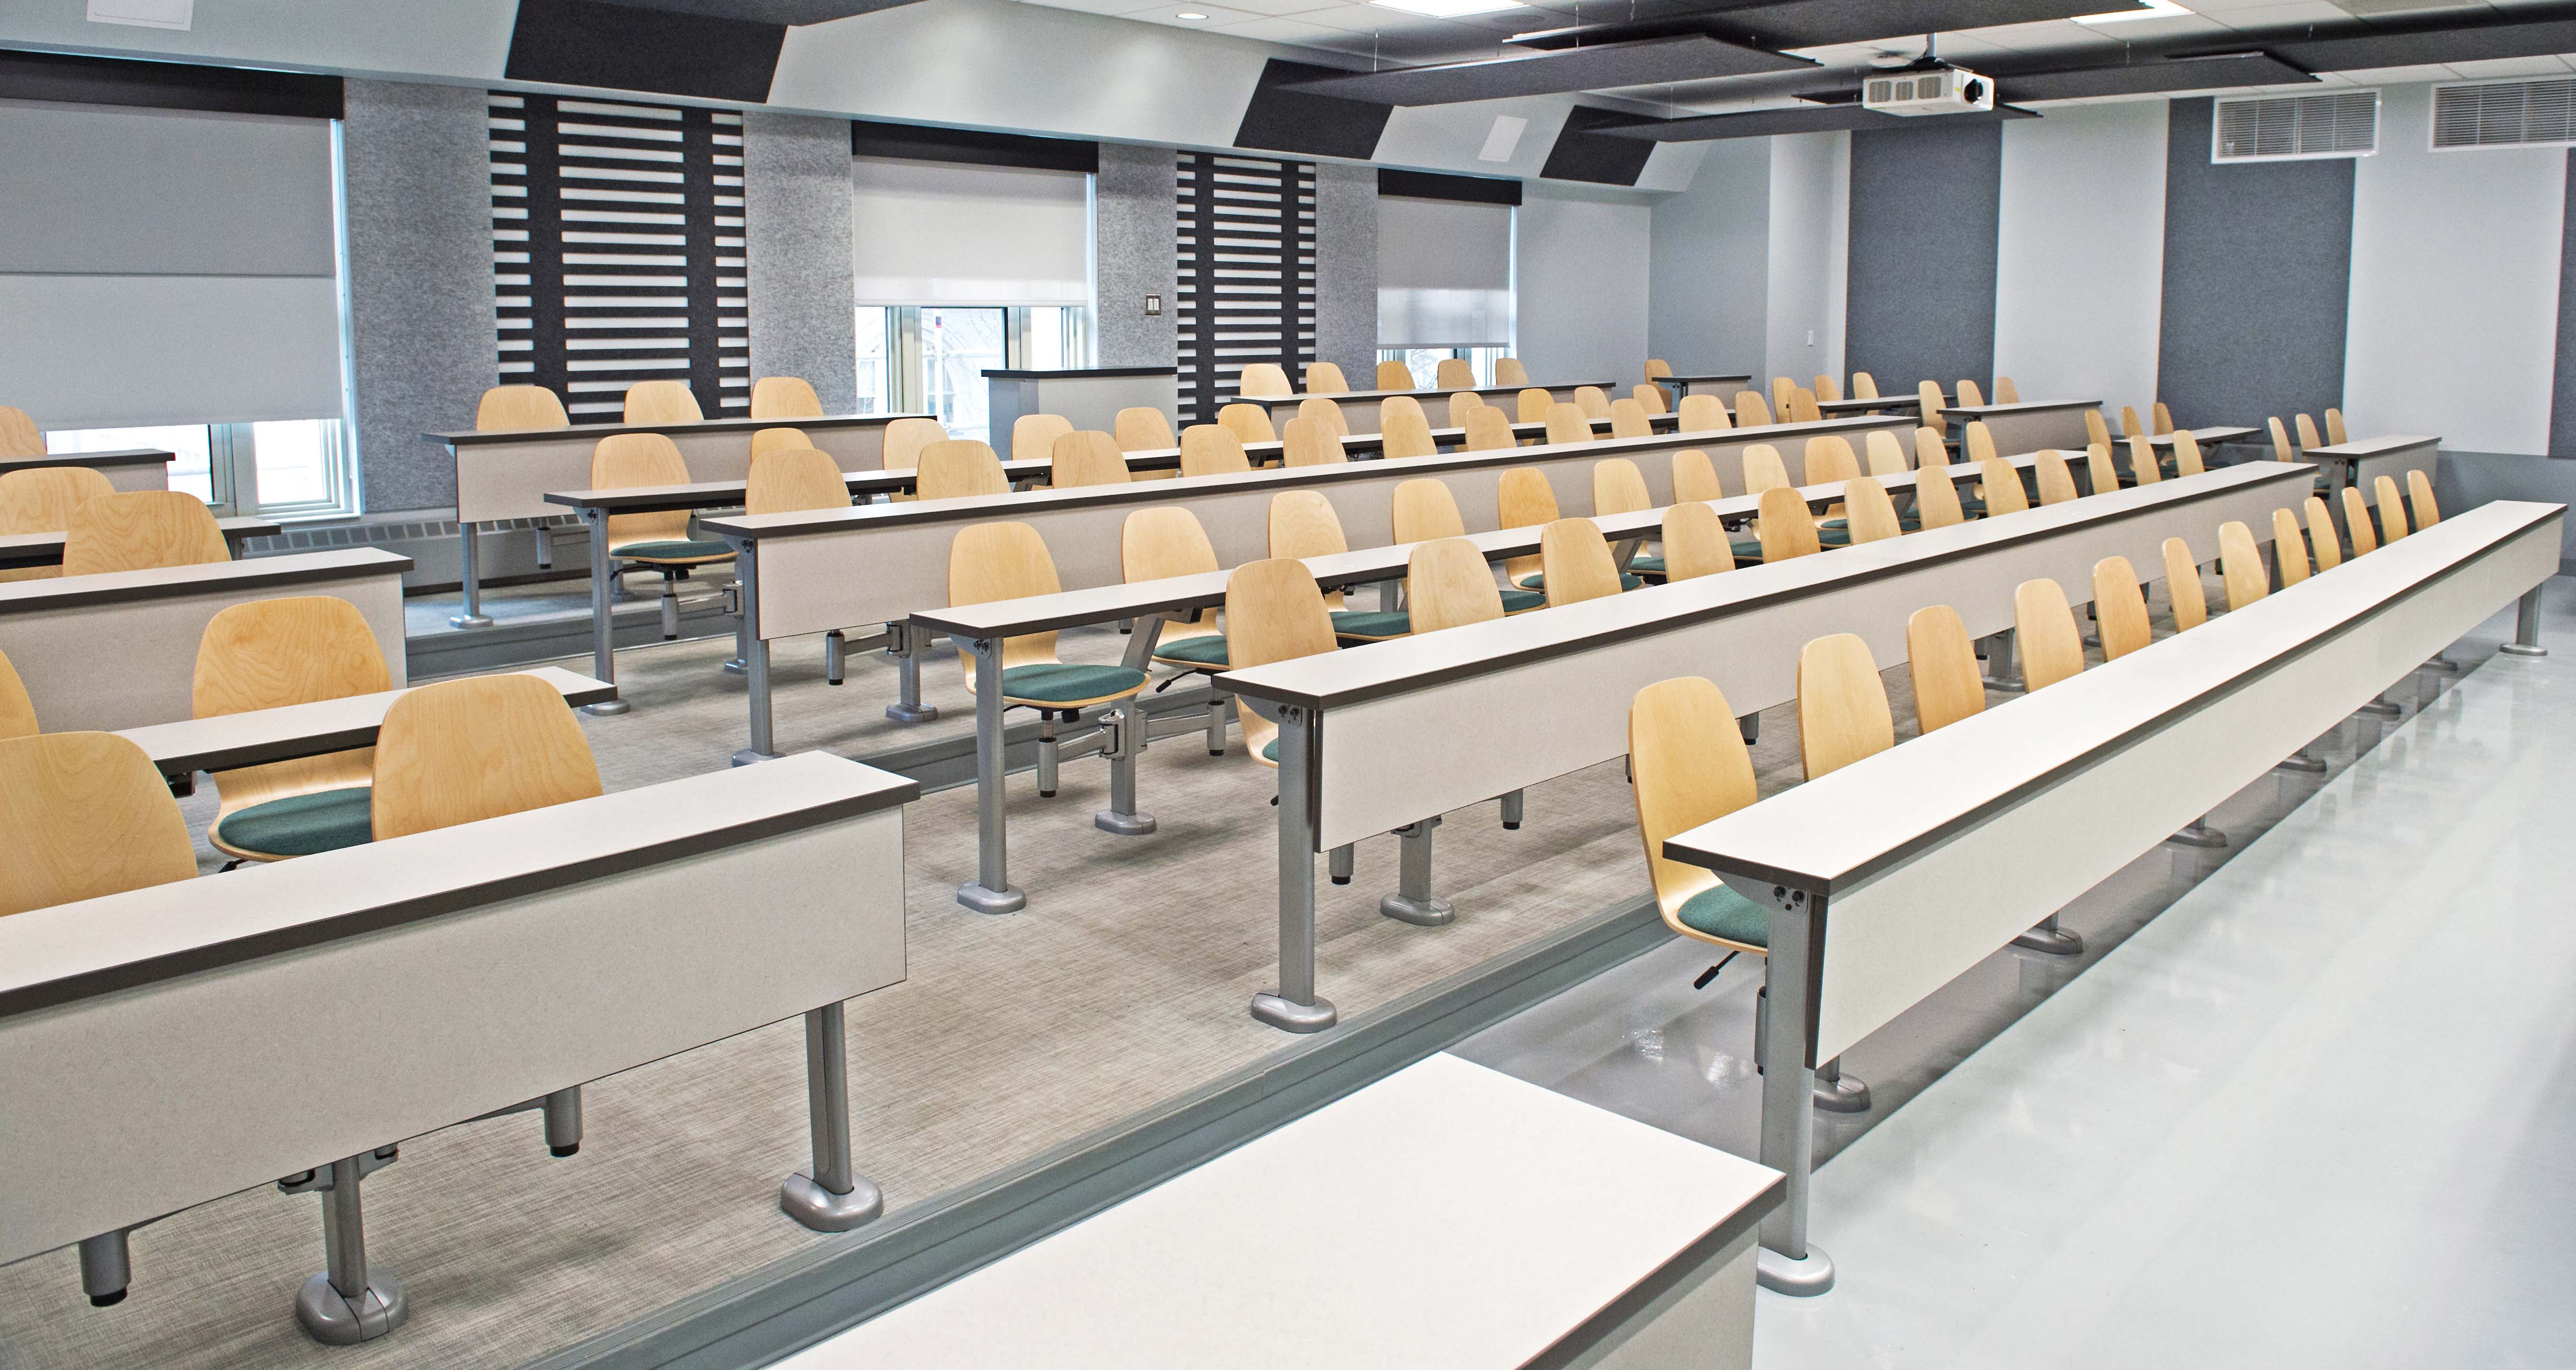 Redone Thaw Hall classroom